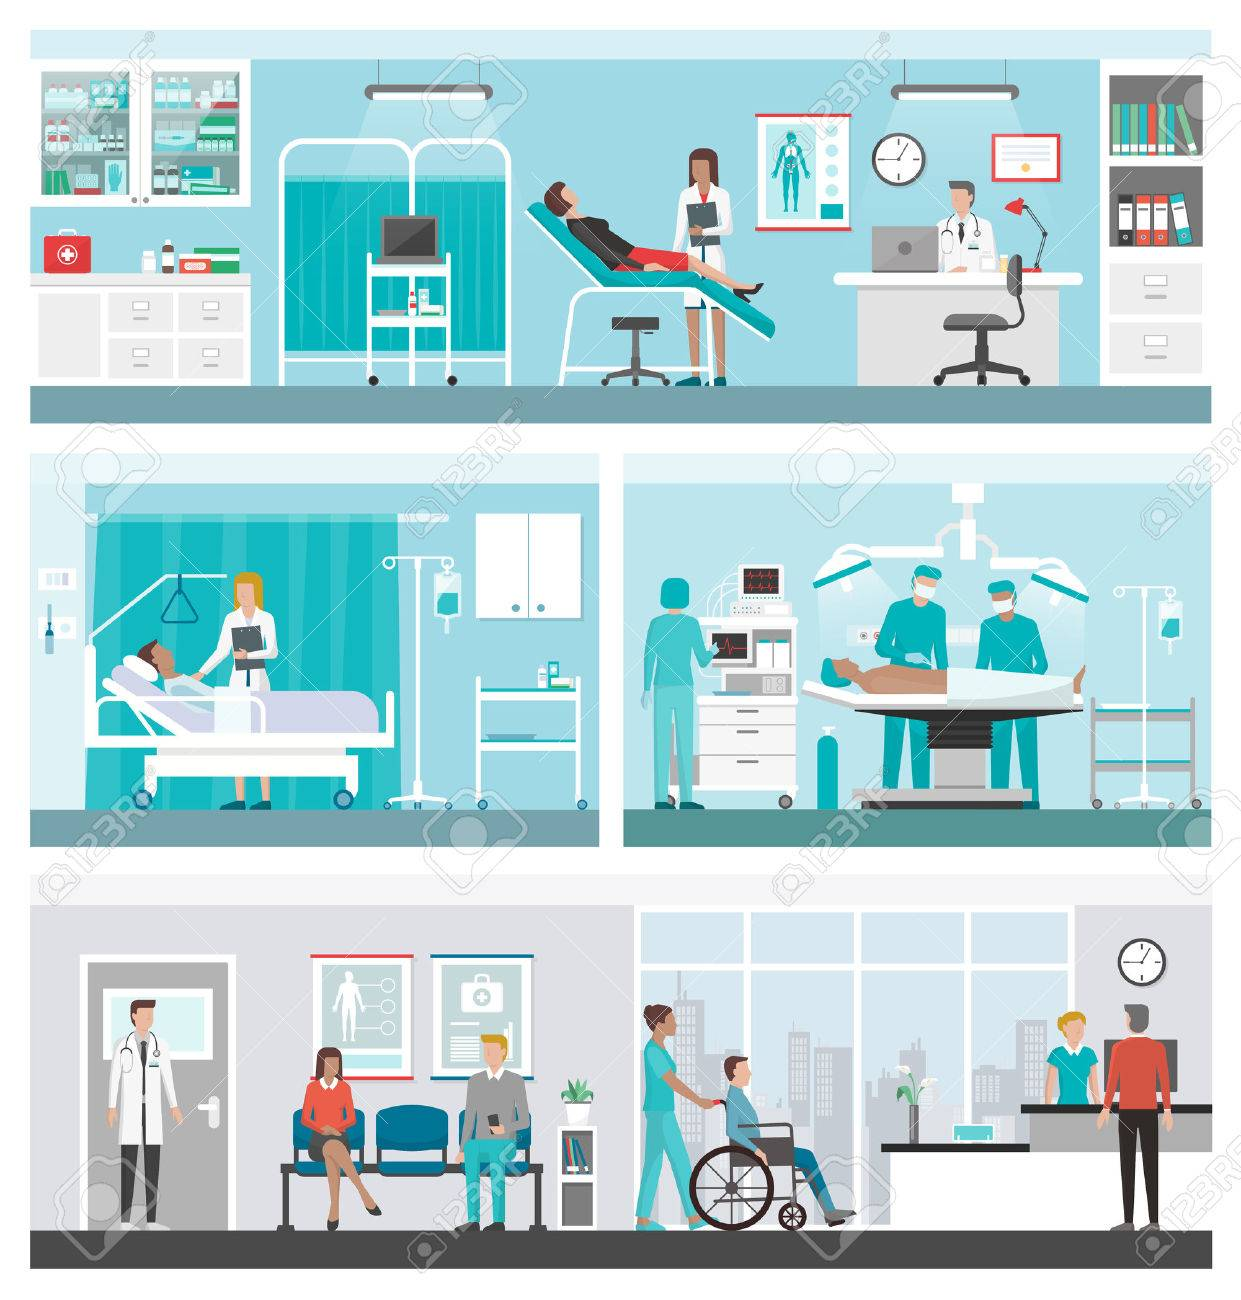 Hospital and healthcare banner set: doctors working in the office, ward, surgery, reception and patients waiting in the corridor - 52598501